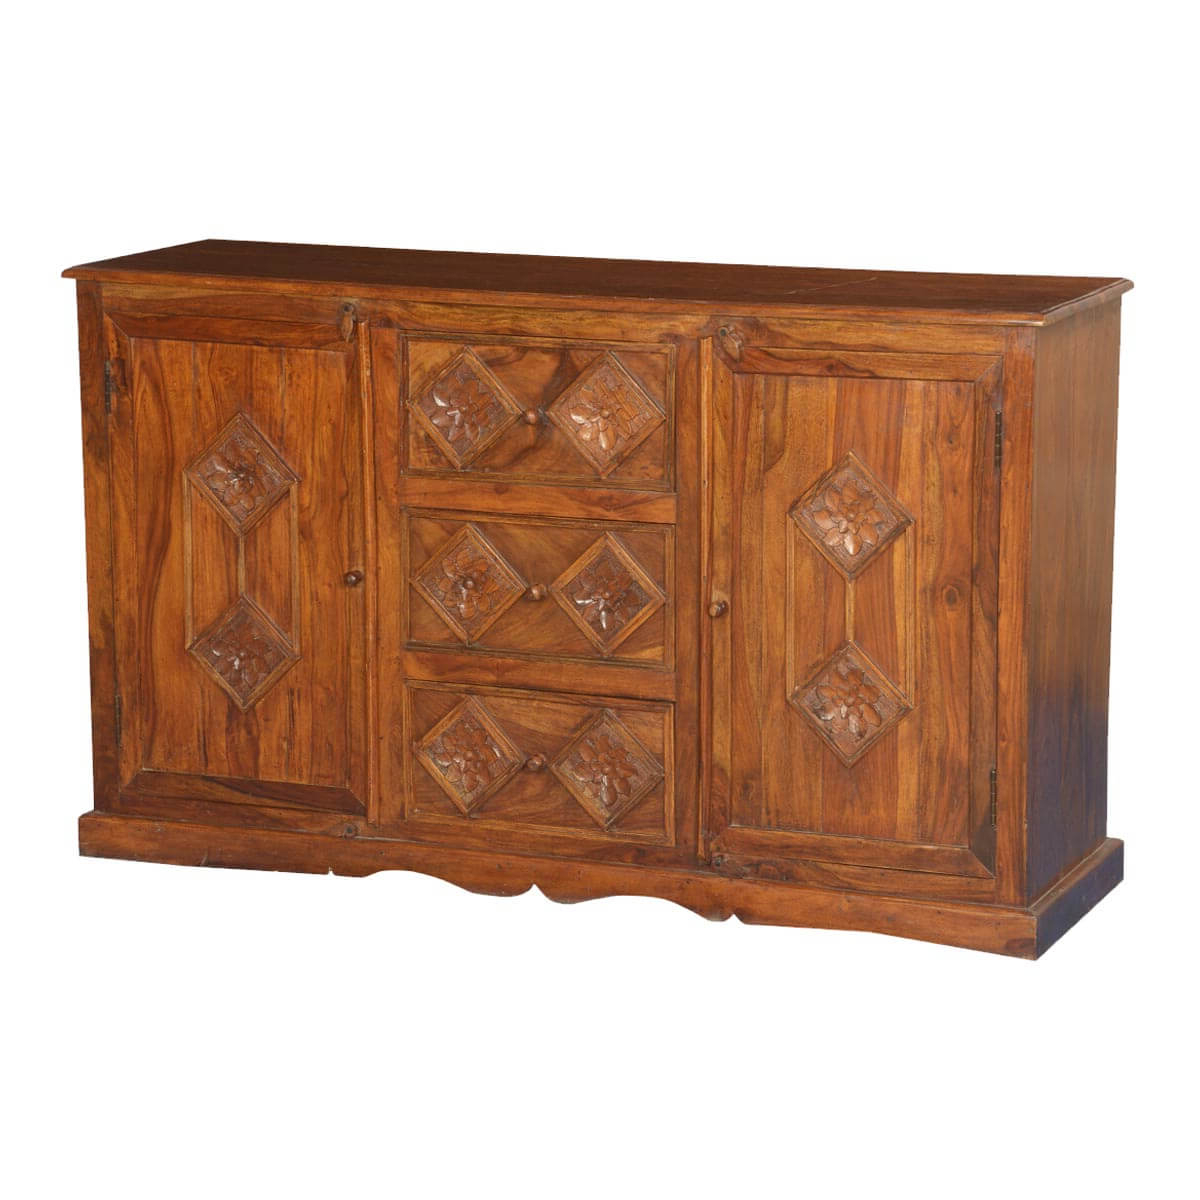 Most Recently Released 3 Drawer Sideboards Inside Diamond Rose Solid Wood 3 Drawer Sideboard (View 3 of 20)